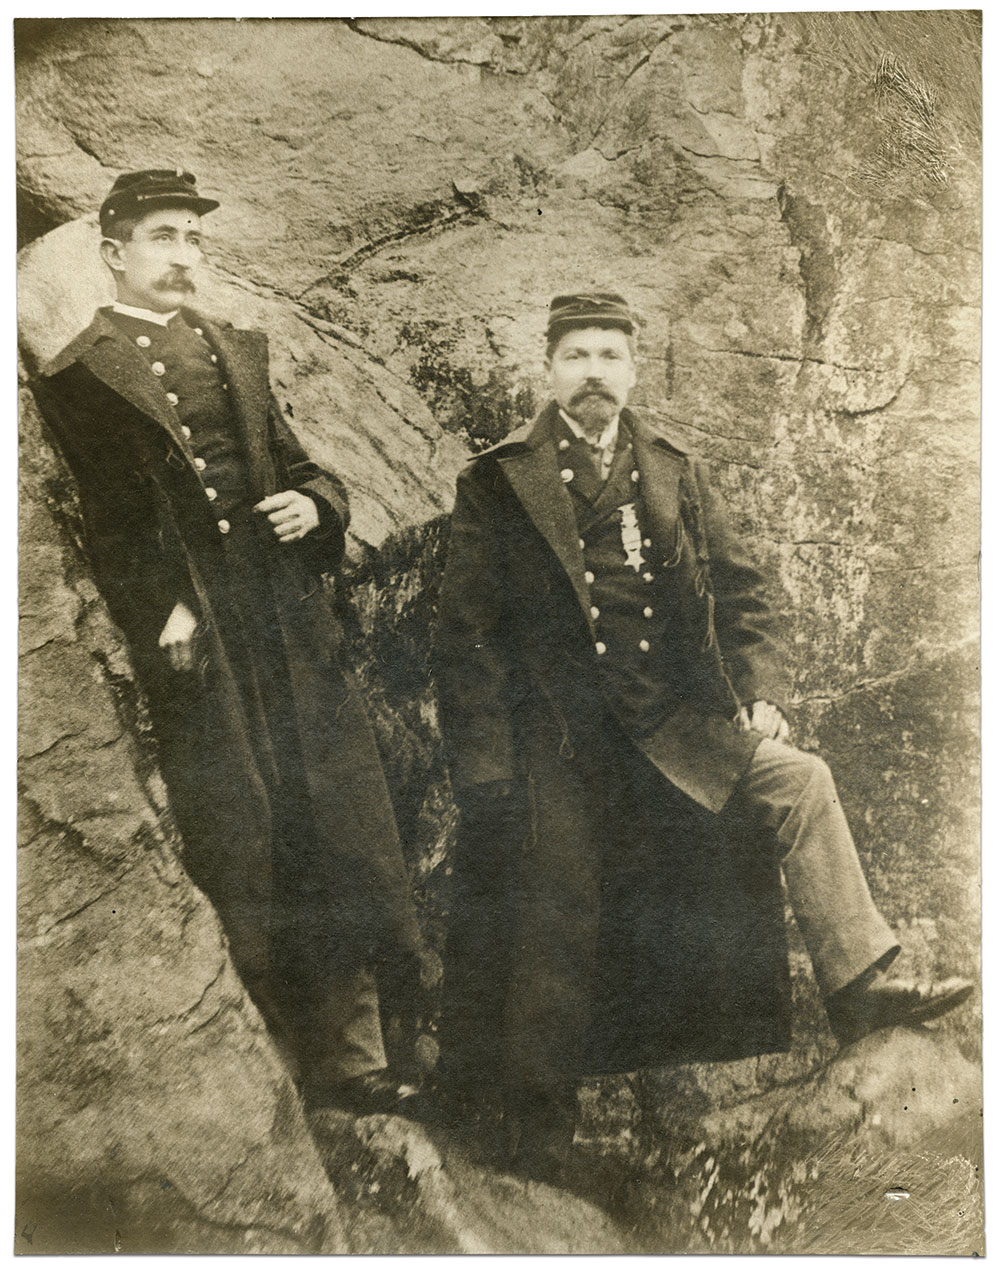 The Maryland National Guard frequently made pilgrimages to the battlefield at Gettysburg. Here, Fisher, right, dressed as an officer in the Hagerstown Light Infantry, poses with another officer on the rocks of Devil's Den, circa 1890. Fisher wears his G.A.R. membership medal. Print by an anonymous photographer. Kirk Fisher Collection.